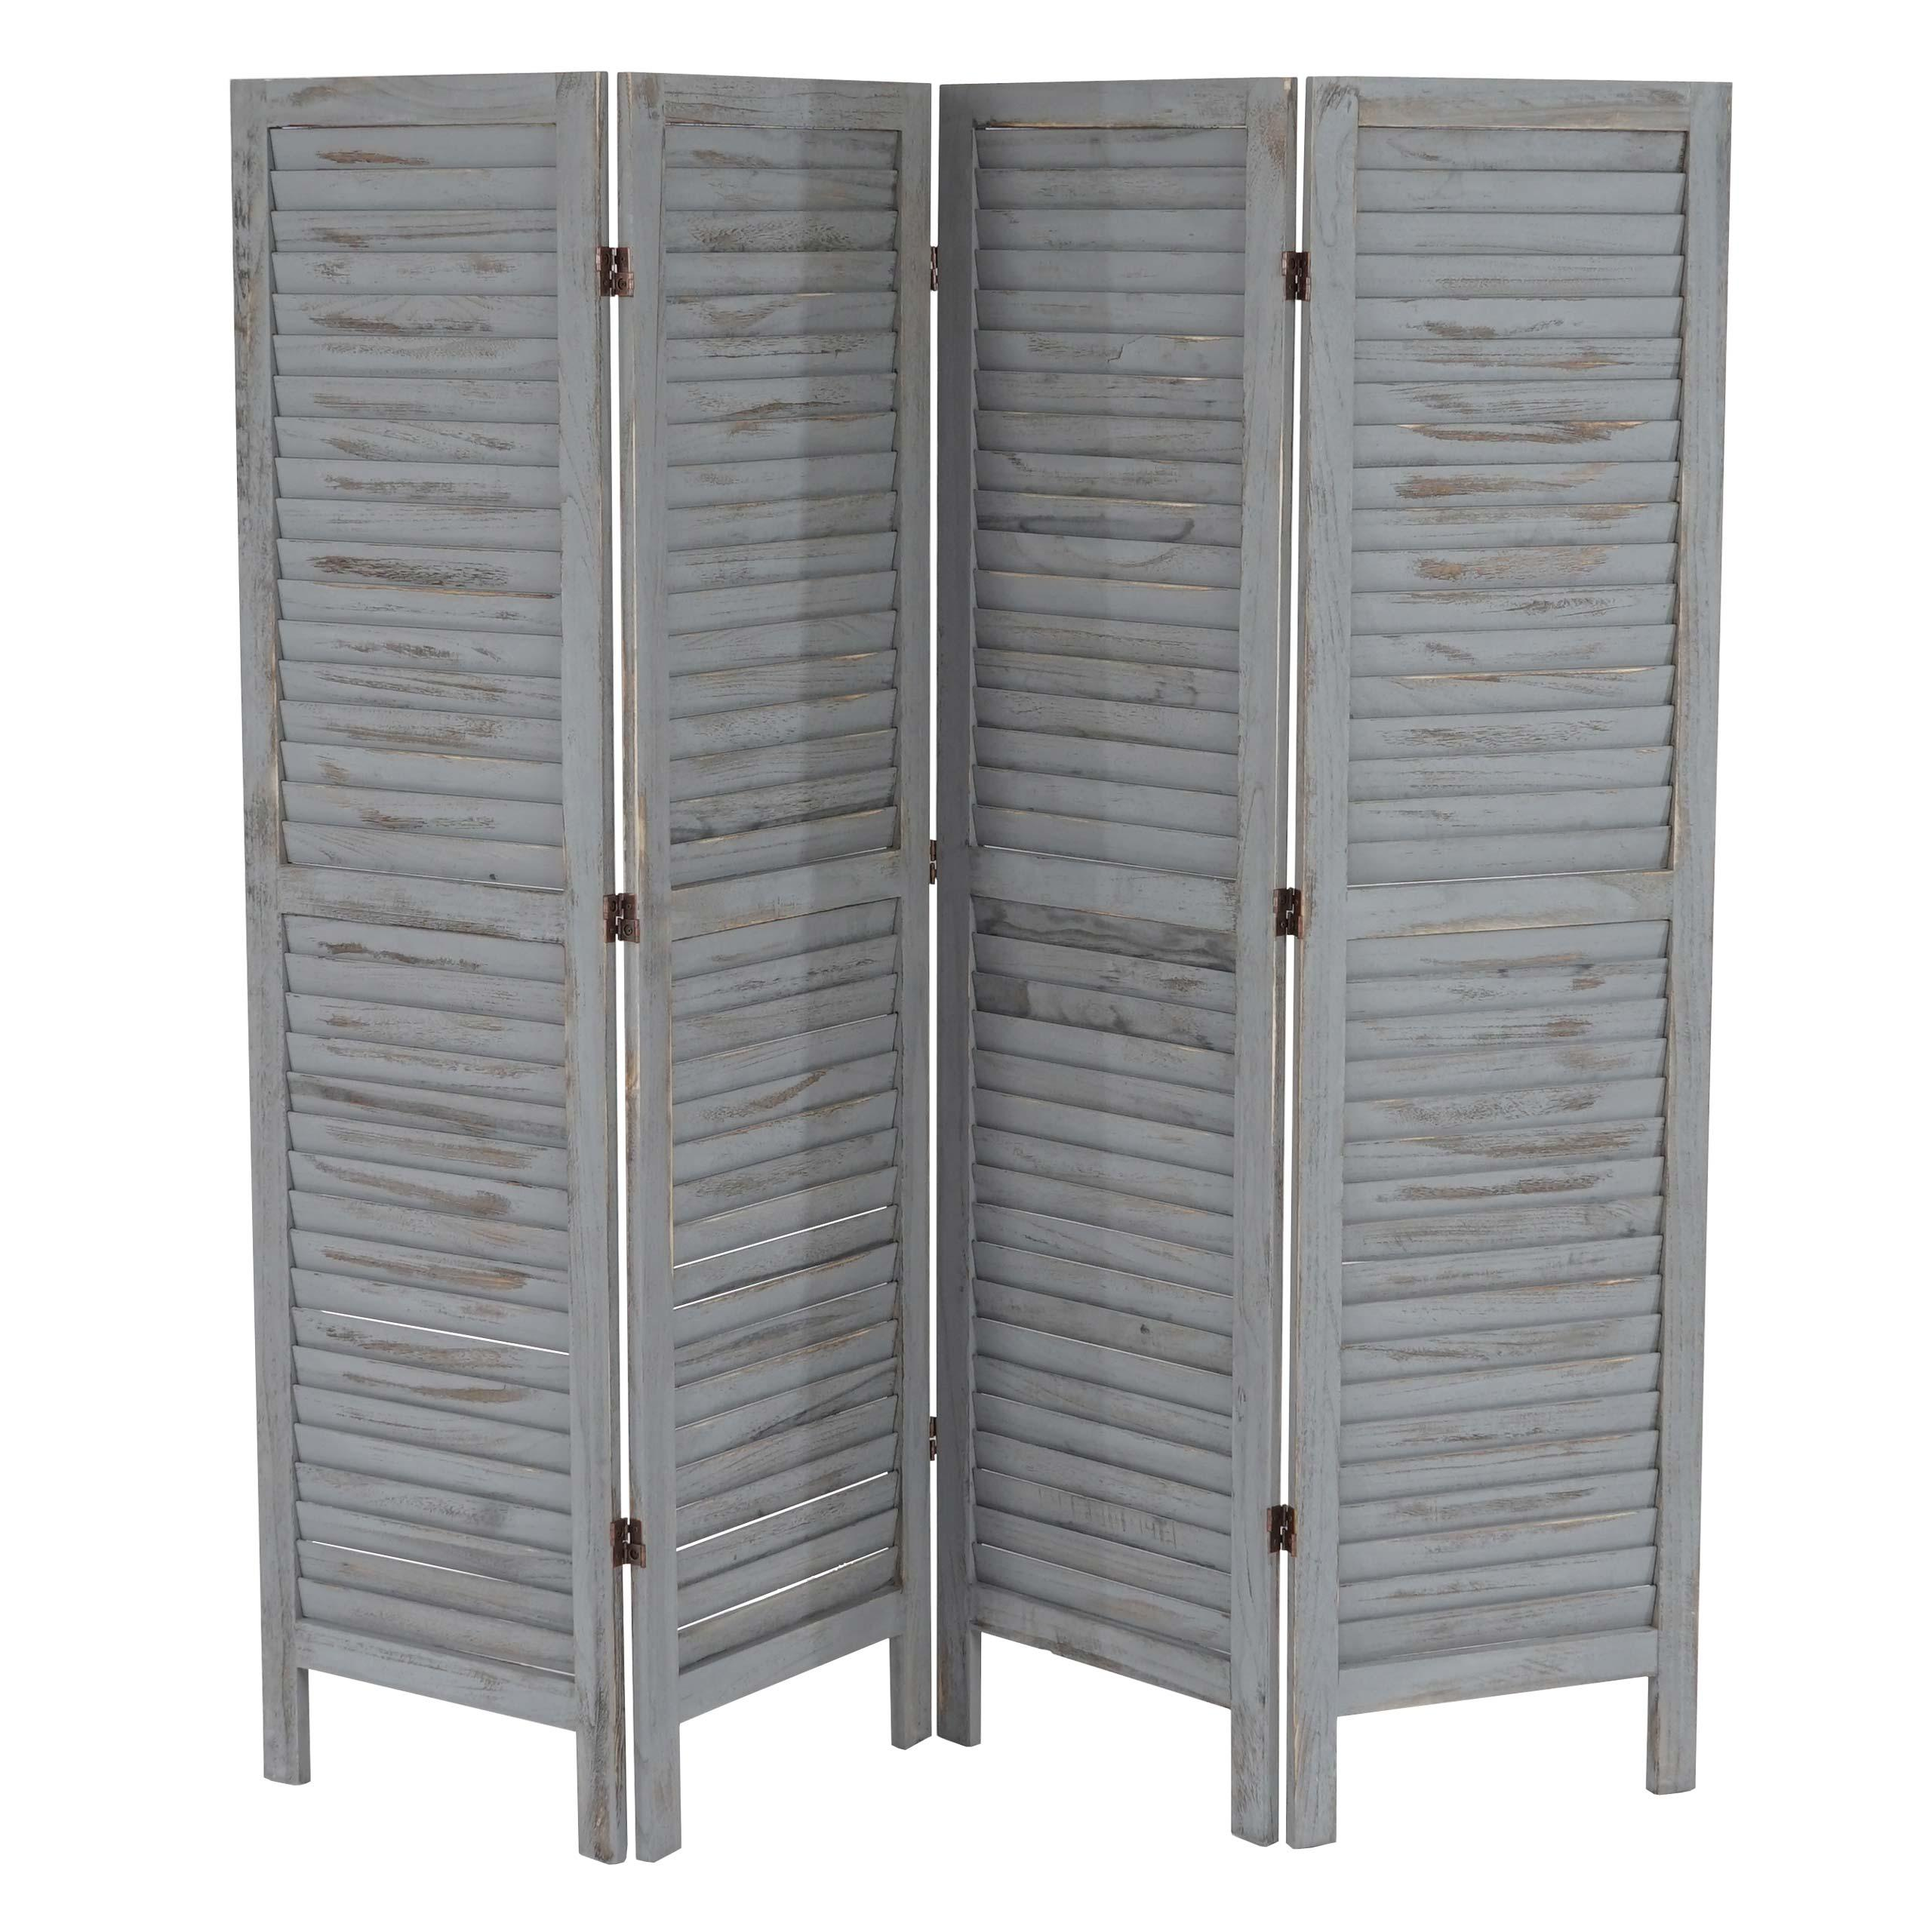 paravento a 4 pannelli leo cm 170x182x2 stile shabby chic in legno grigio paravento in legno. Black Bedroom Furniture Sets. Home Design Ideas